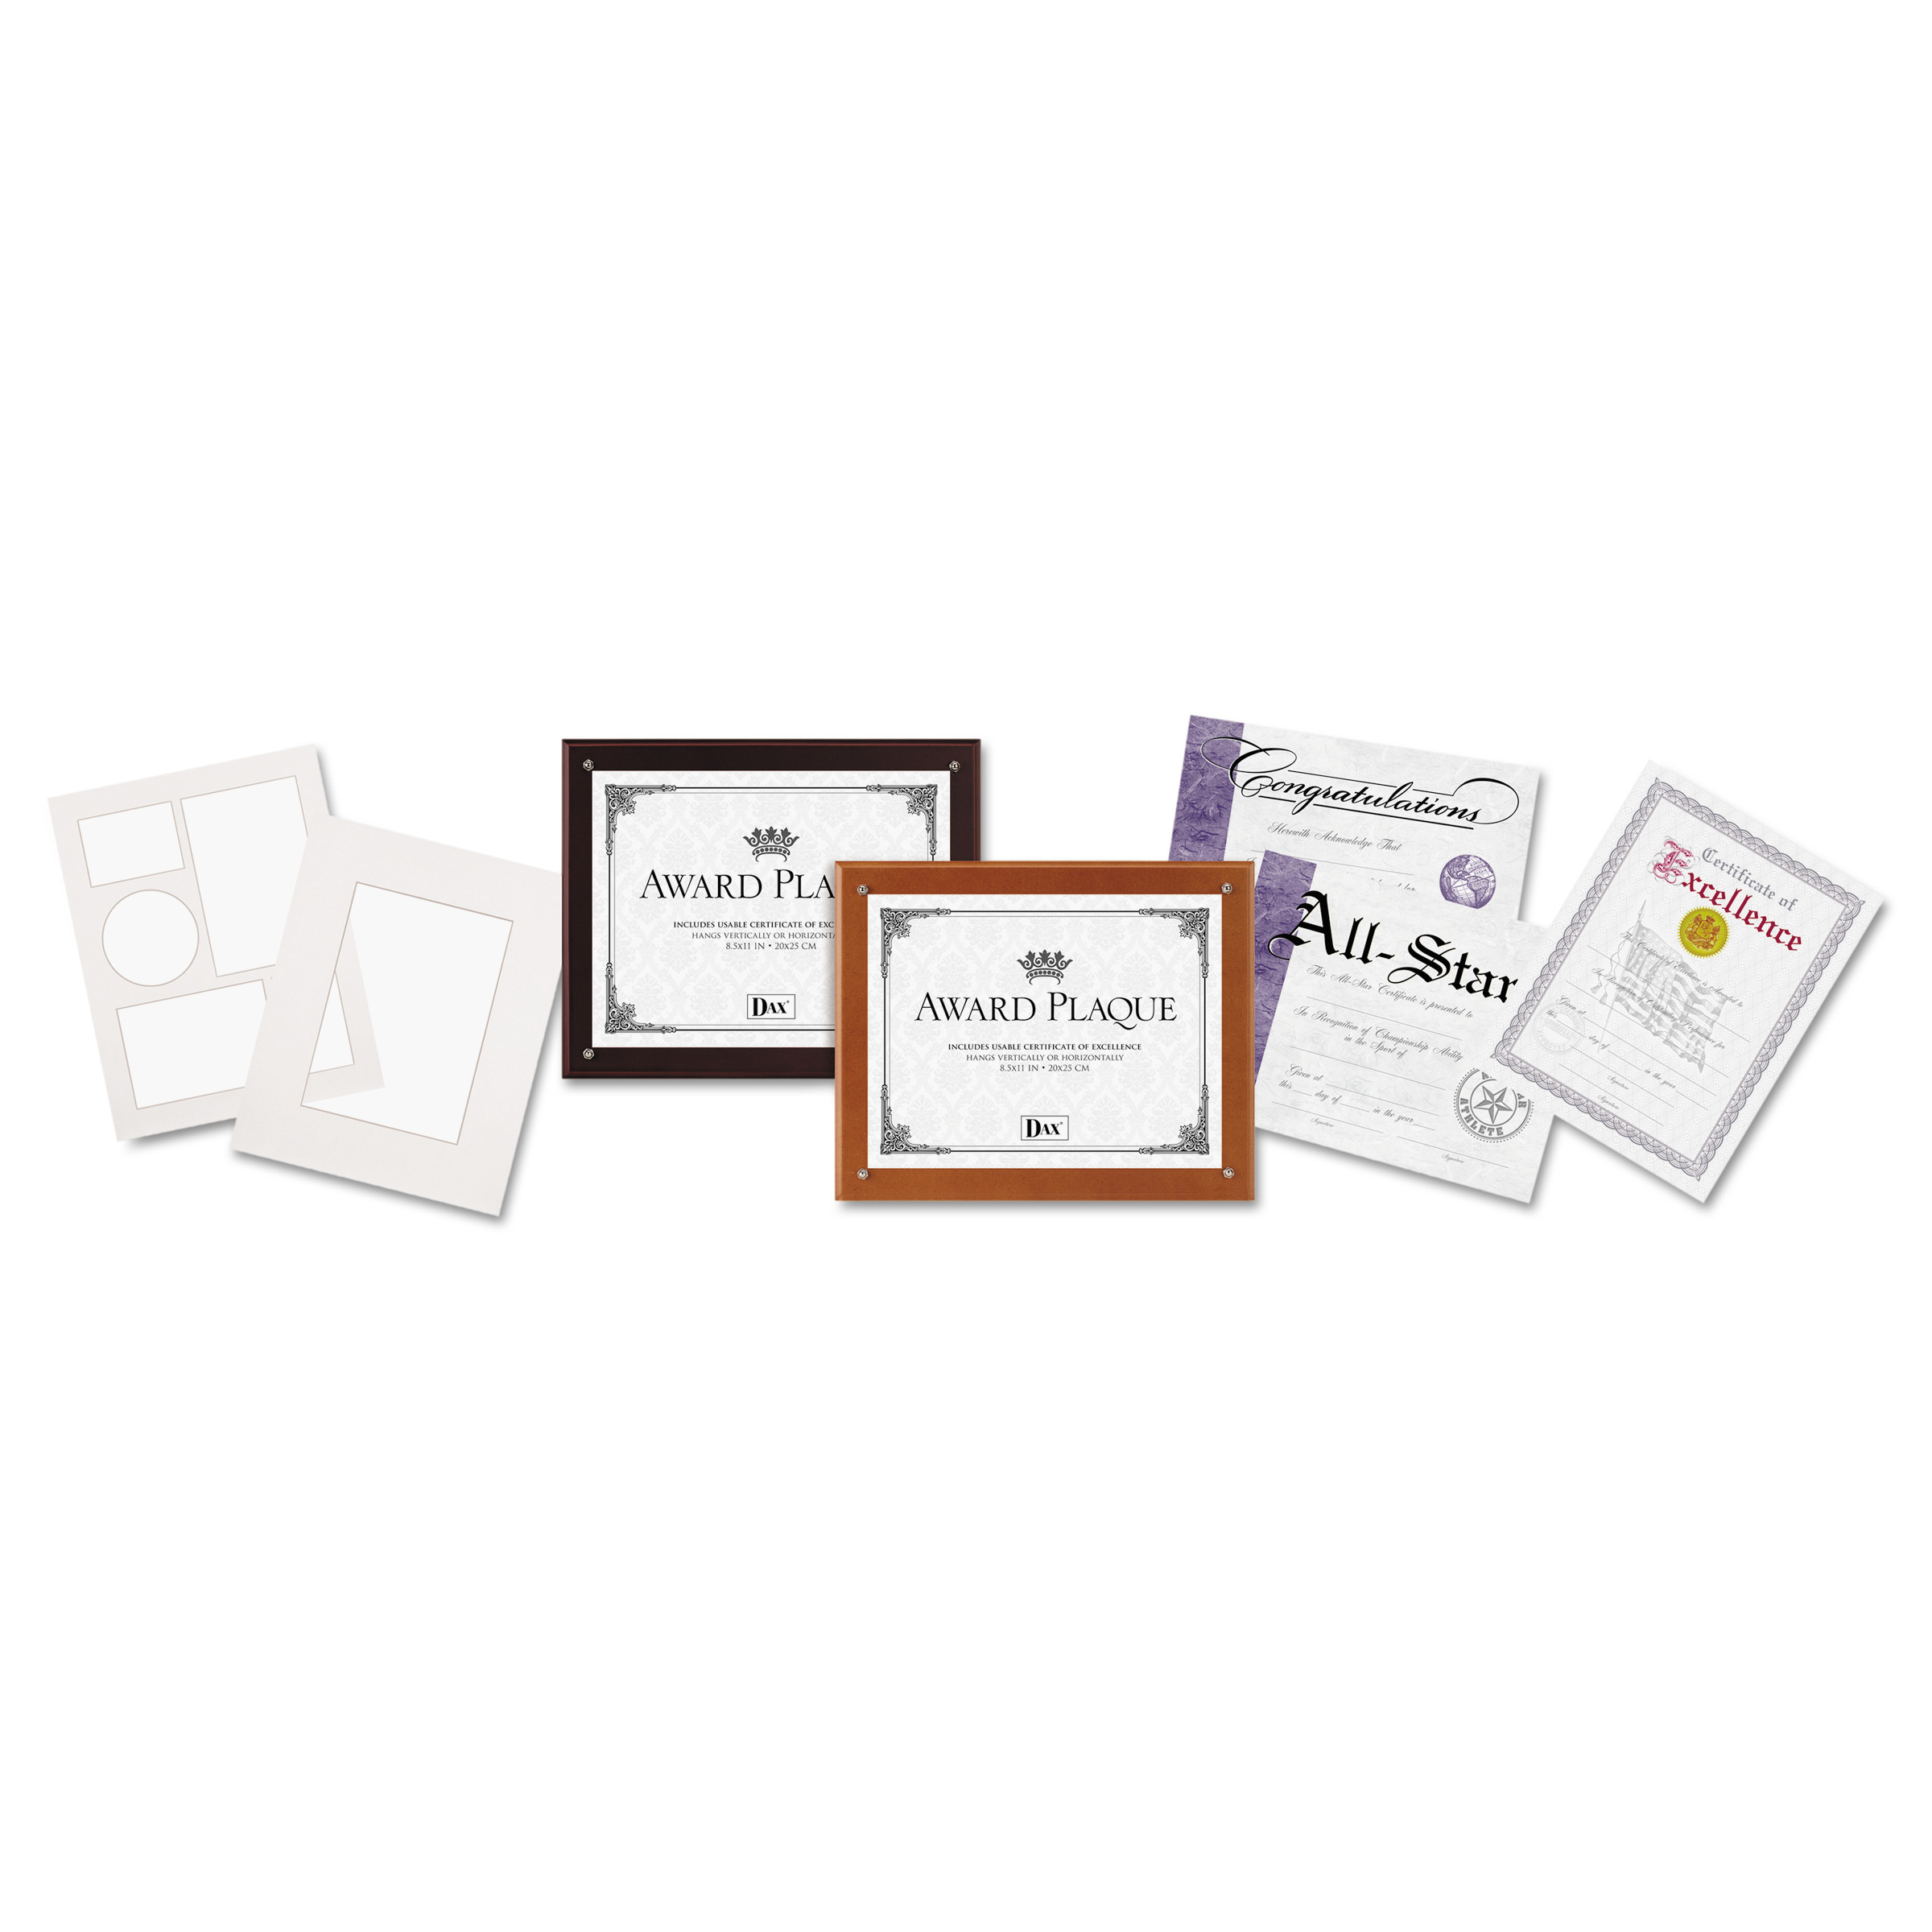 DAX Plaque-In-An-Instant Kit w Certs & Mats, Wood Acrylic Up to 8 1 2 x 11, Mahogany by DAX MANUFACTURING INC.